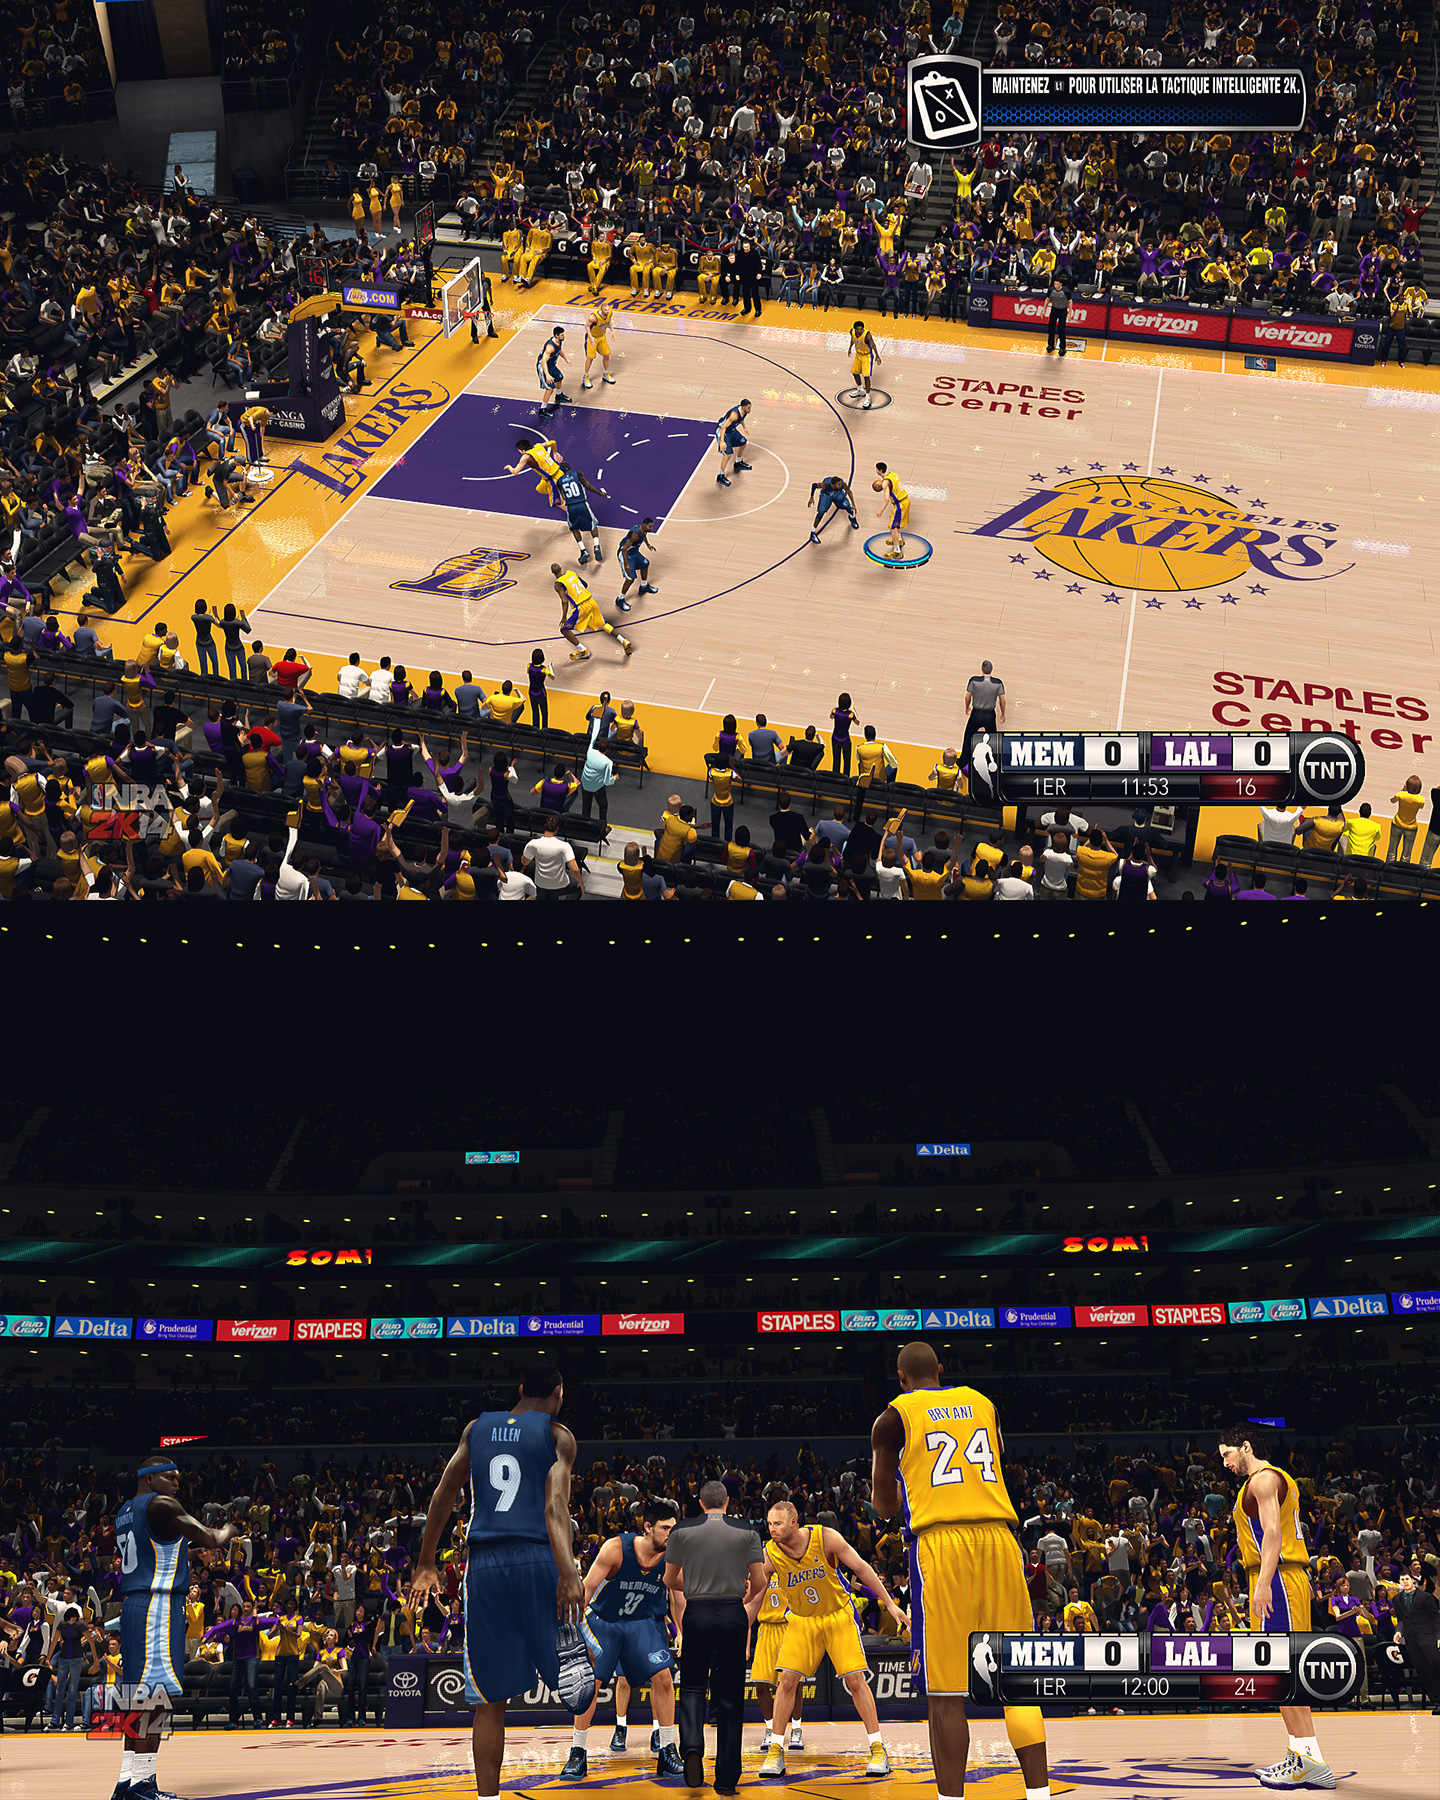 Los Angeles Lakers Staples Center - HD Arenas